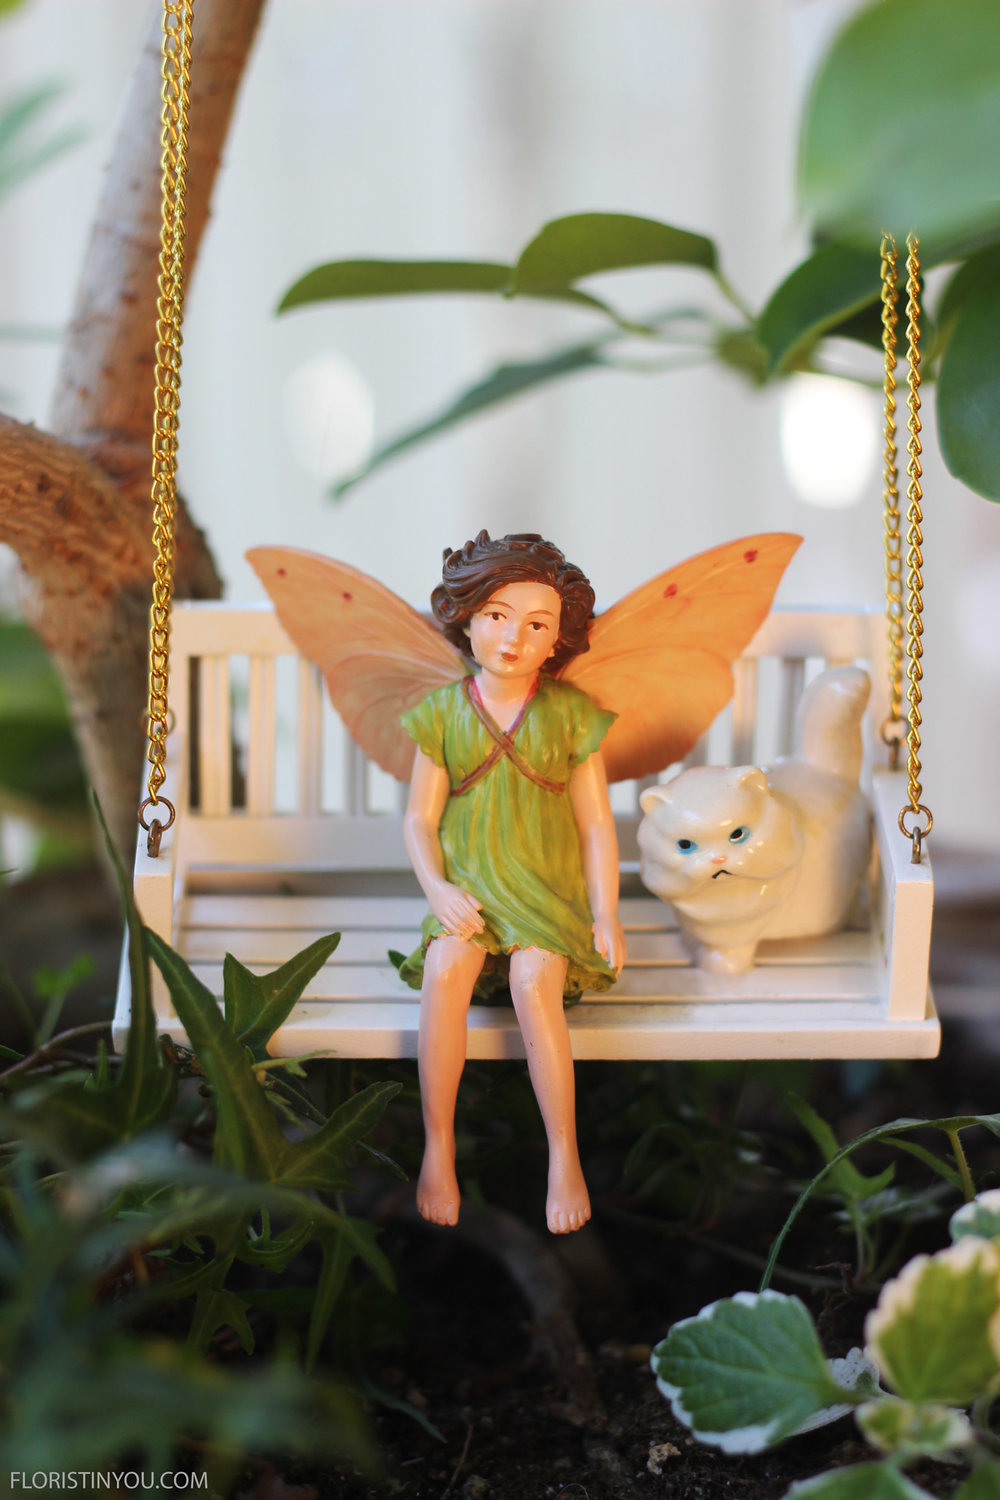 The Apple Blossom Fairy has auburn hair and a neo-classical dress.